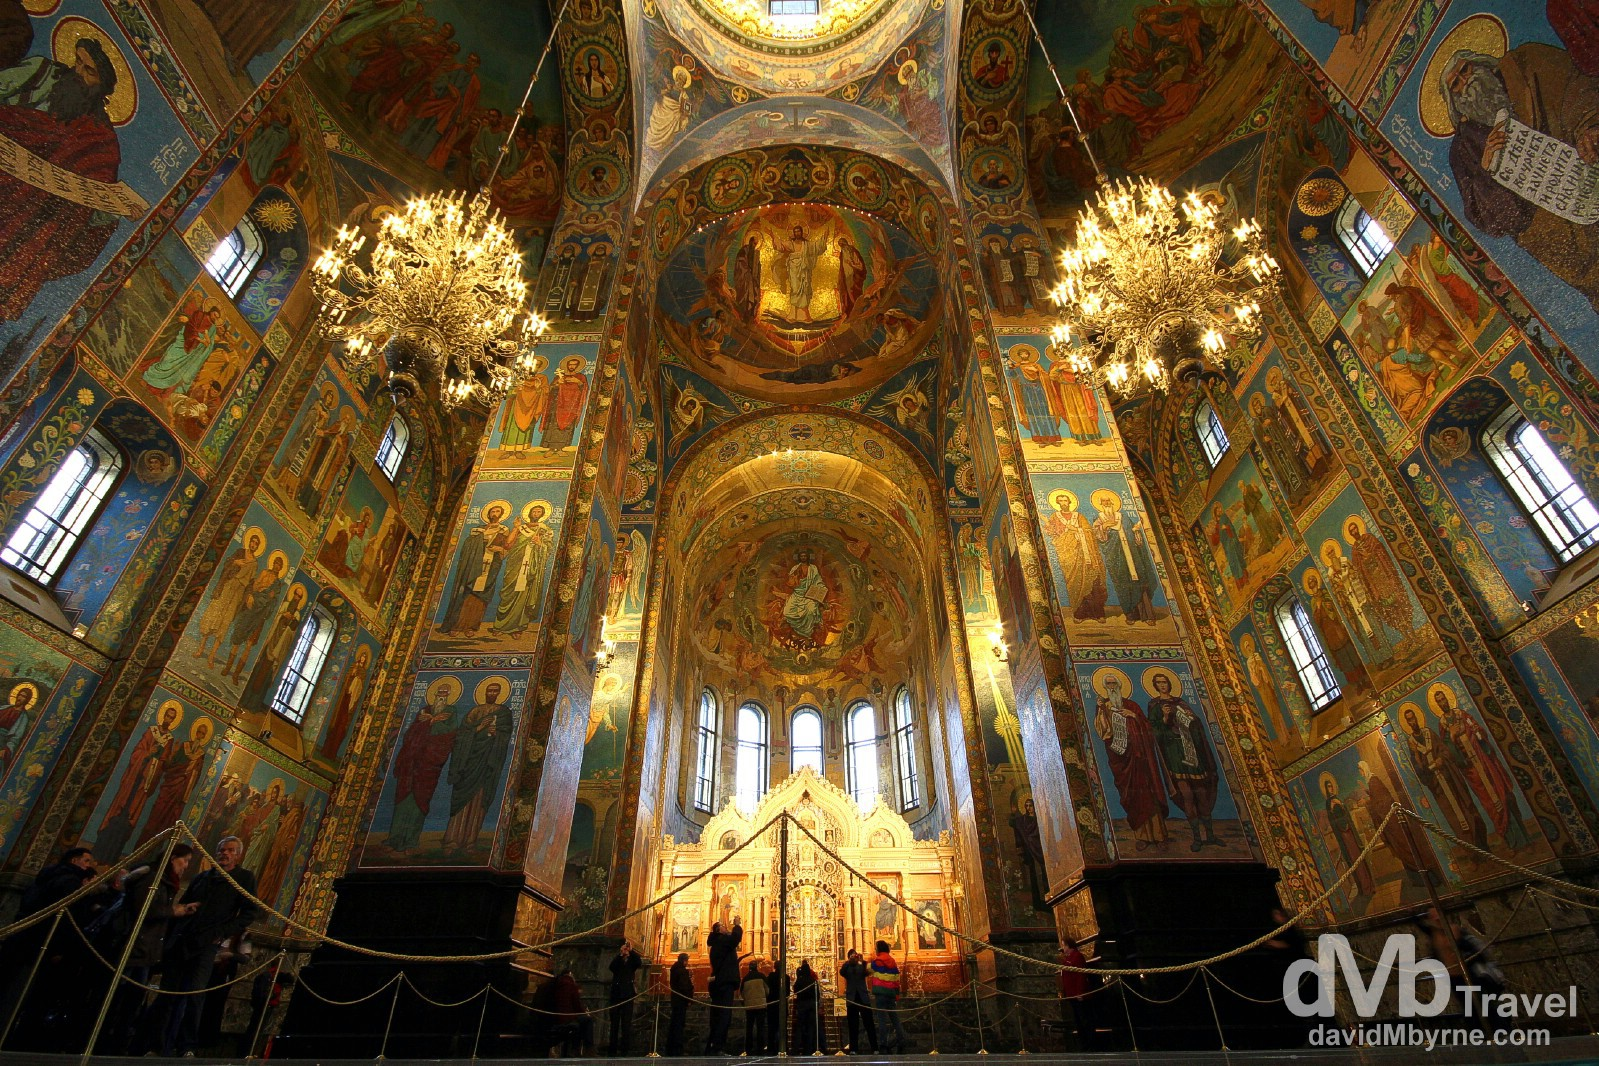 The impressive interior of the Cathedral of the Resurrection of Christ, aka the Church on Spilled Blood, in St Petersburg, Russia. November 23rd 2012.